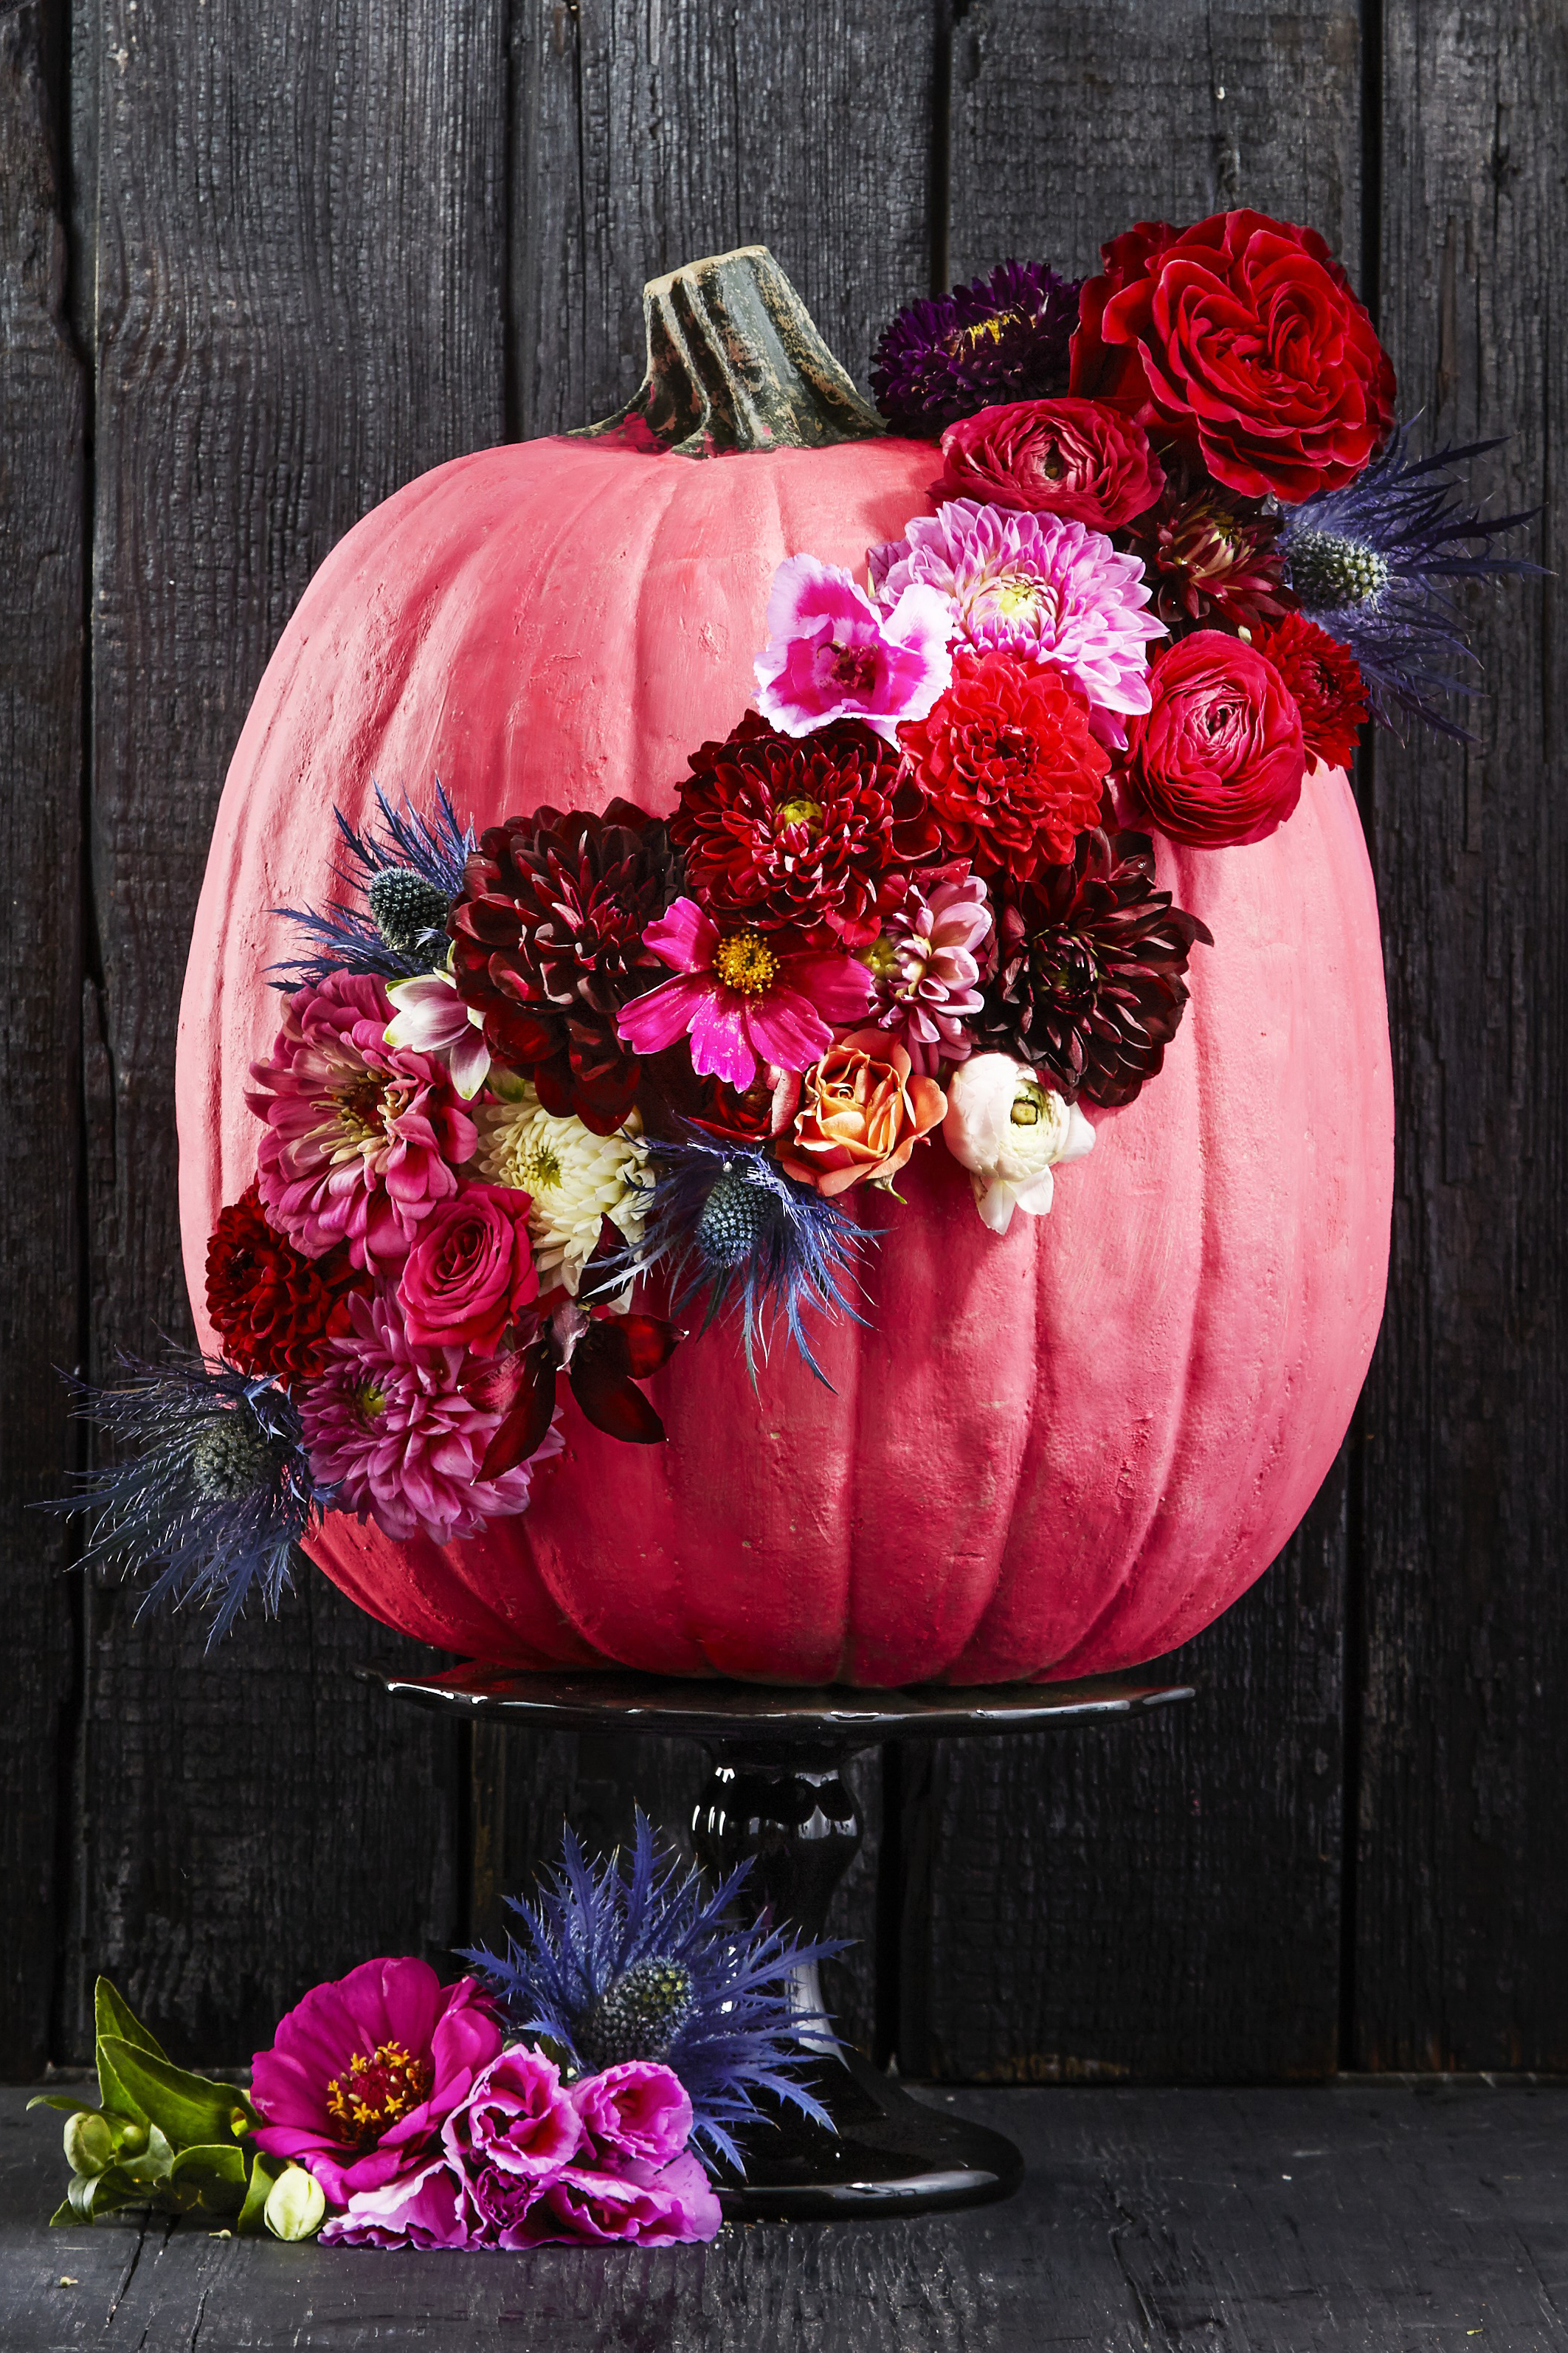 30 Painted Pumpkin Decorating Ideas for Halloween 2017